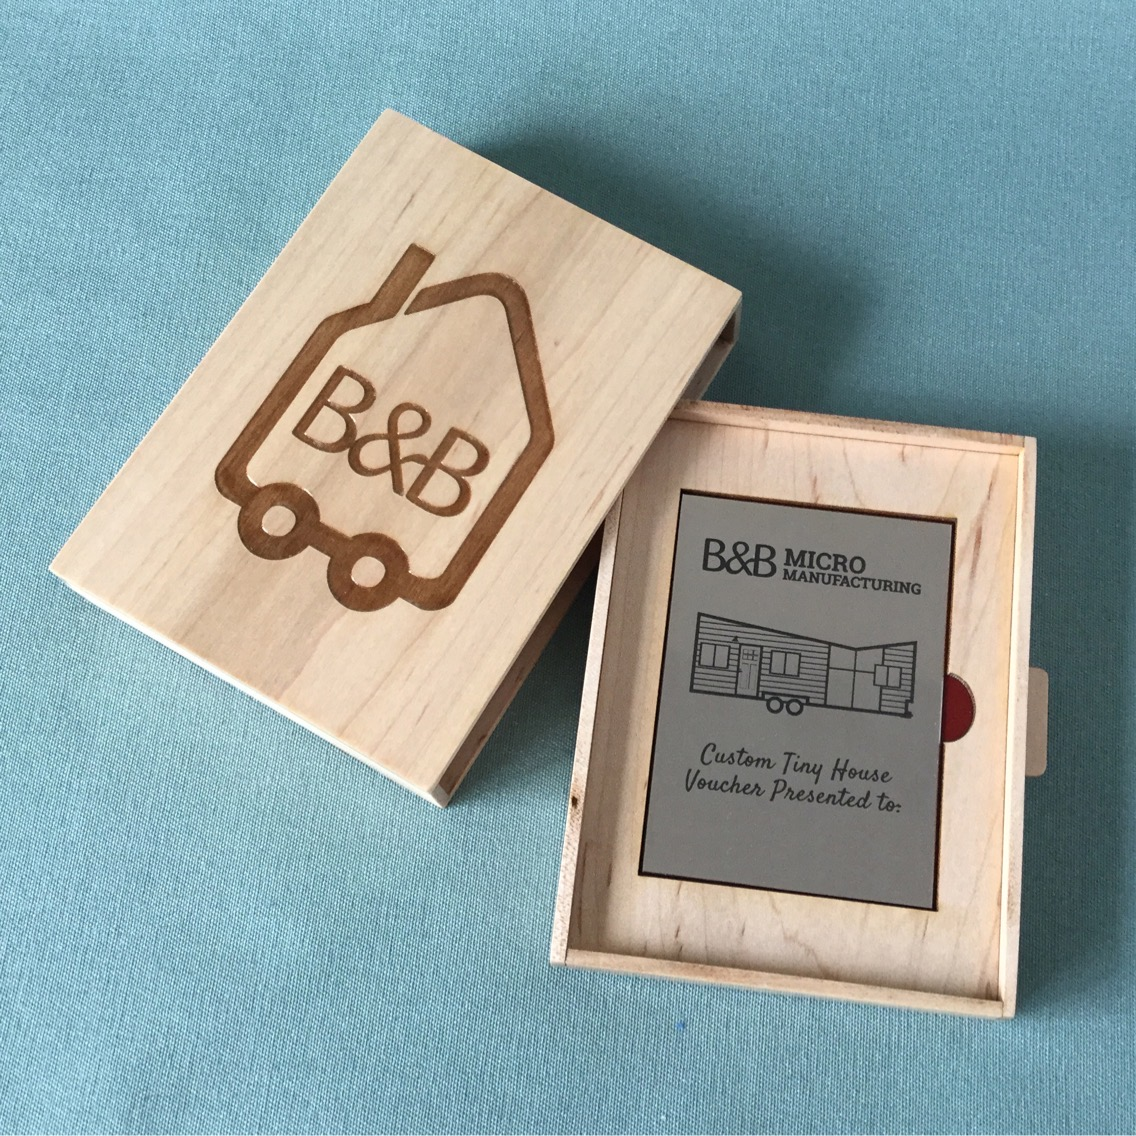 B&B Micro Manufacturing   Laser cut and engraved maple box with stainless steel laser marked voucher. Designed by FreeFall Laser